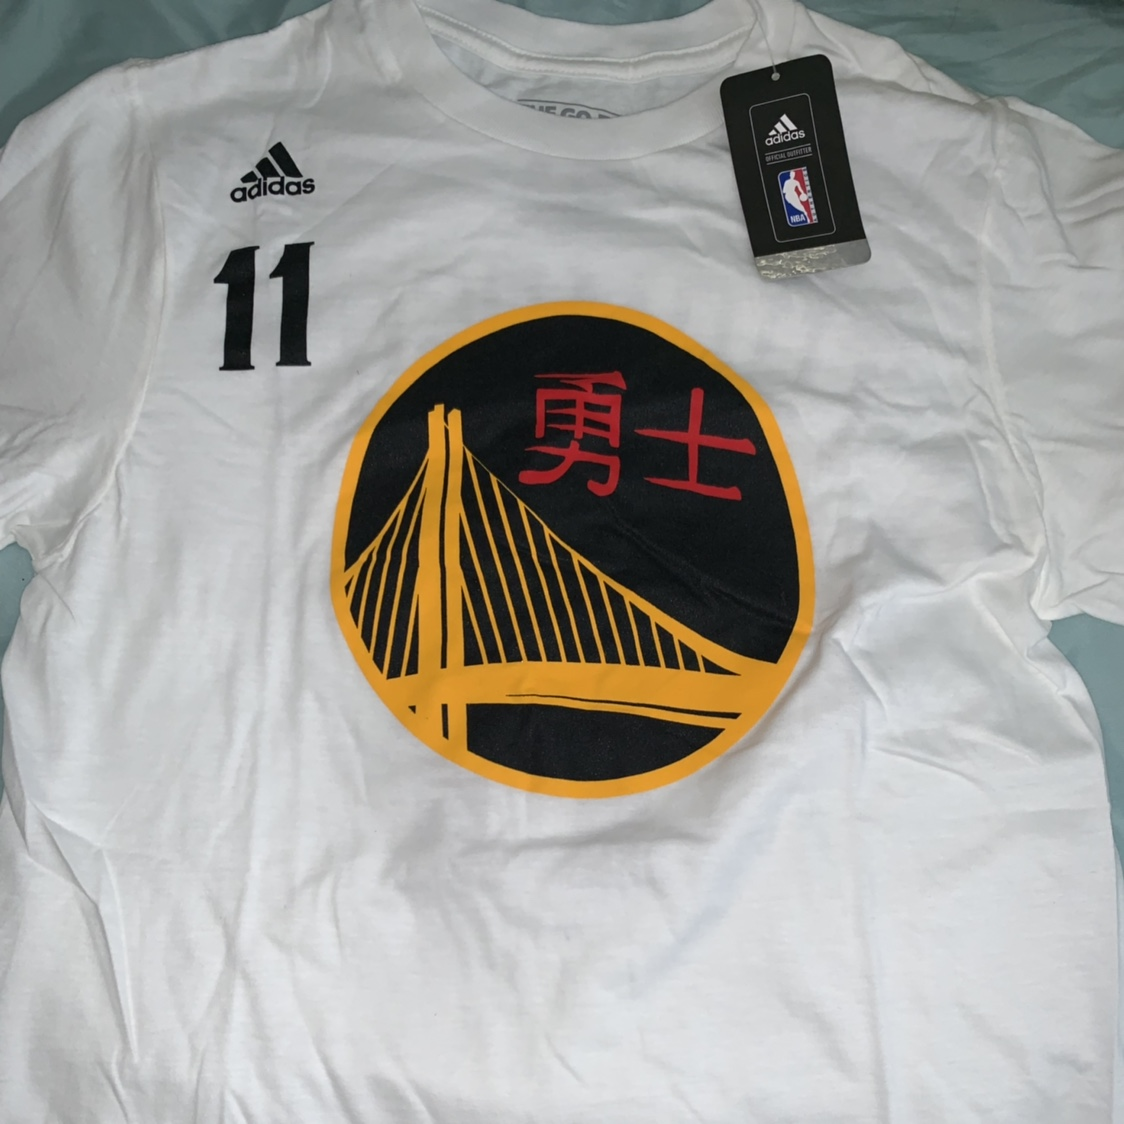 sports shoes 83ff1 be0f9 Klay Thompson T-shirt Jersey Size small- comes... - Depop